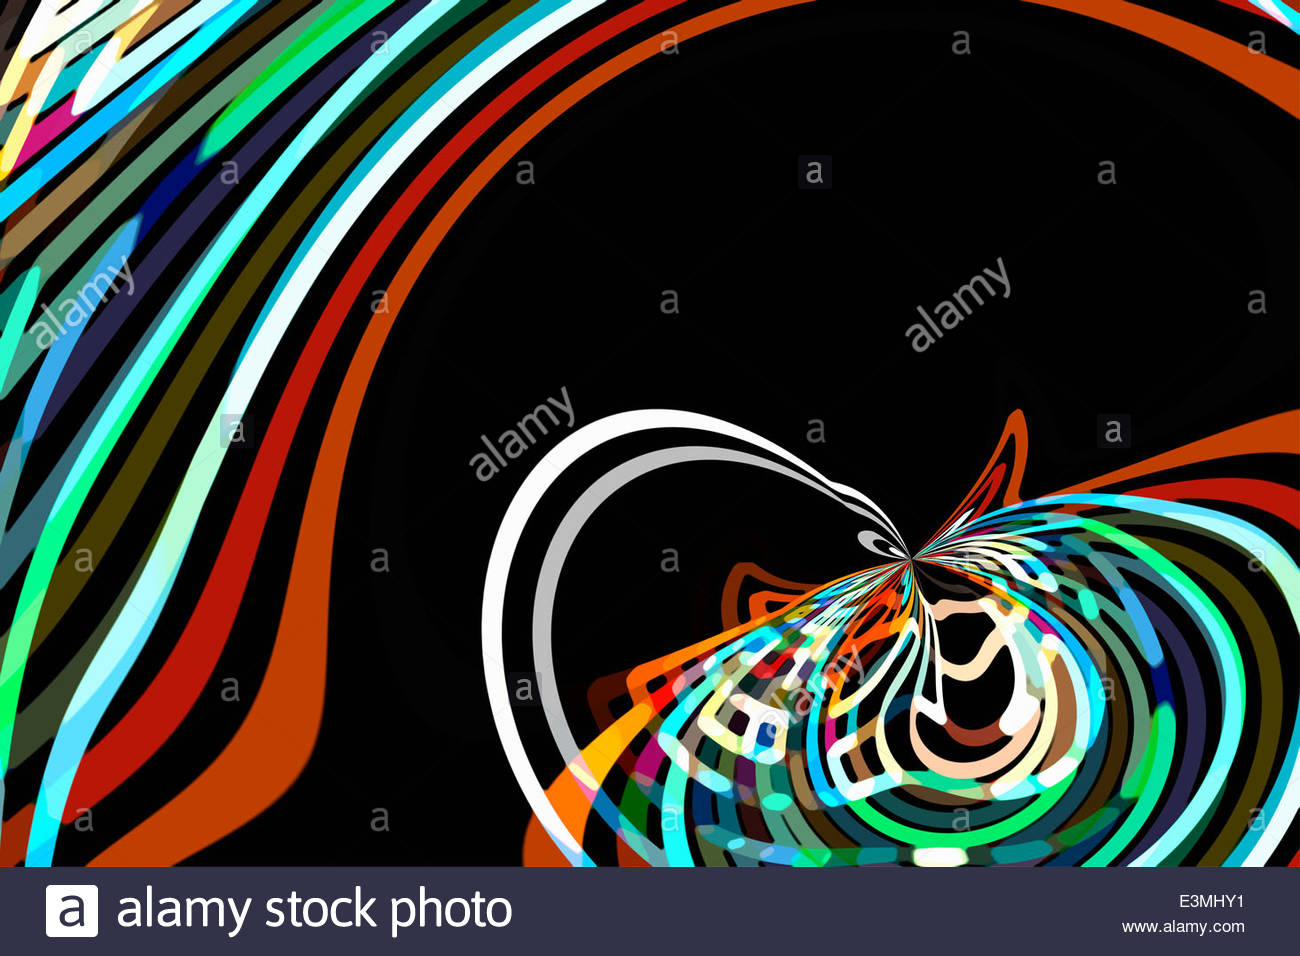 Curved Line Design Art : Curved line stock photos images alamy